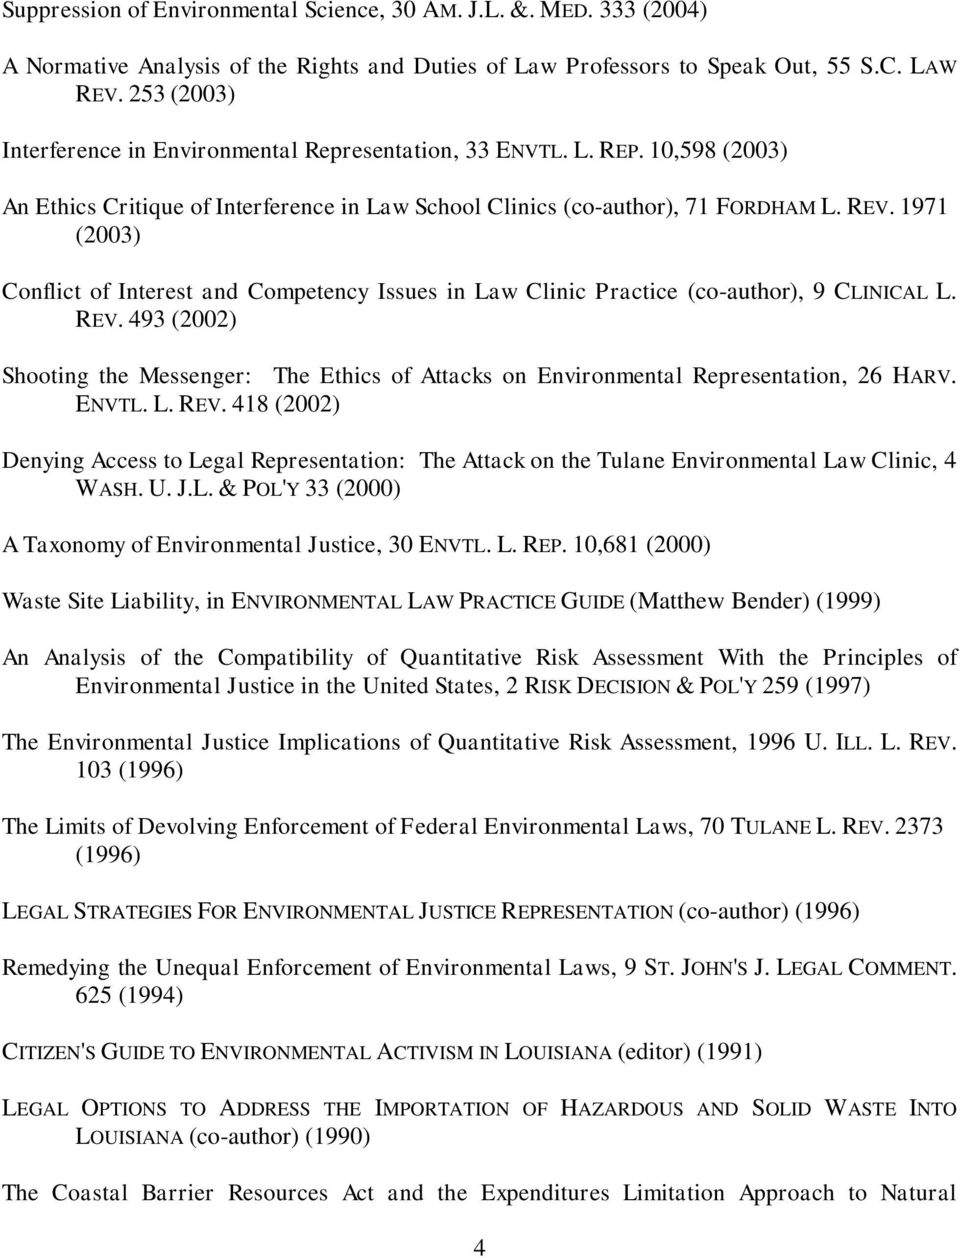 1971 (2003) Conflict of Interest and Competency Issues in Law Clinic Practice (co-author), 9 CLINICAL L. REV.